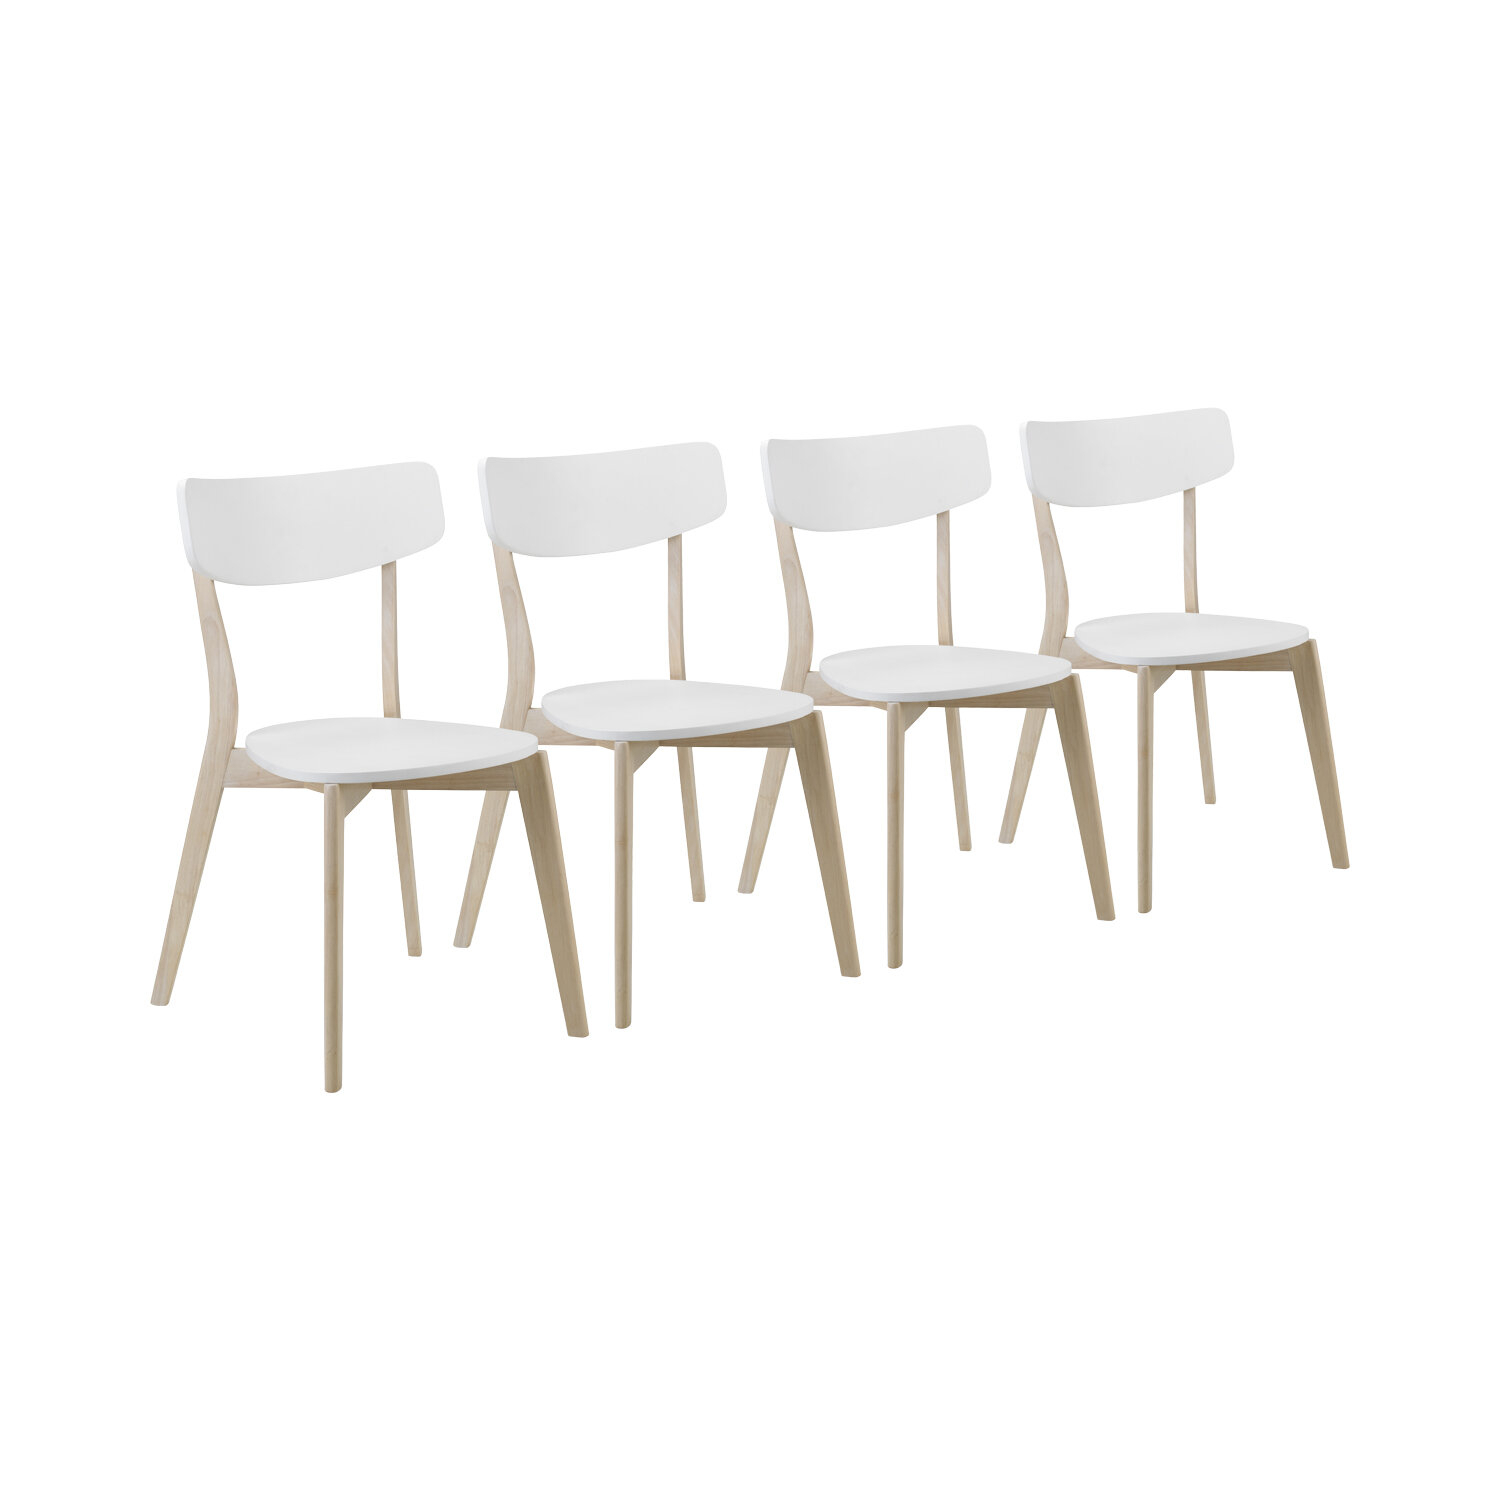 Tott And Eling Dining Chair Intended For Most Up To Date Tott And Eling Sideboards (#18 of 20)